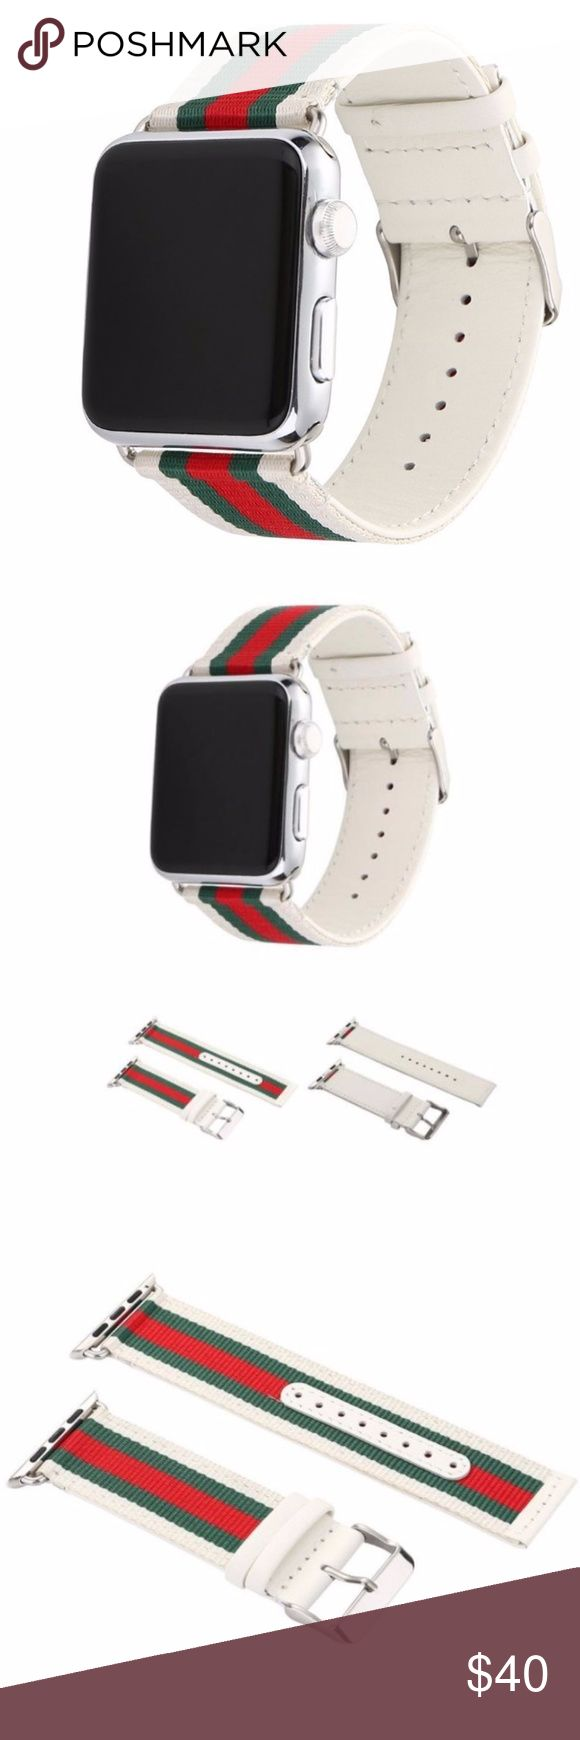 Gucci Pattern Apple Watch Band 48mm and 38mm These luxury designer bands are handmade with luxury quality materials. The bands are designed for both men and women of all ages. The installation is very simple and can be done in seconds. You have the option to change the connector to other colors that may closely match the color of your watch. These bands are sure to be a discussion piece when worn around friends. Accessories Watches